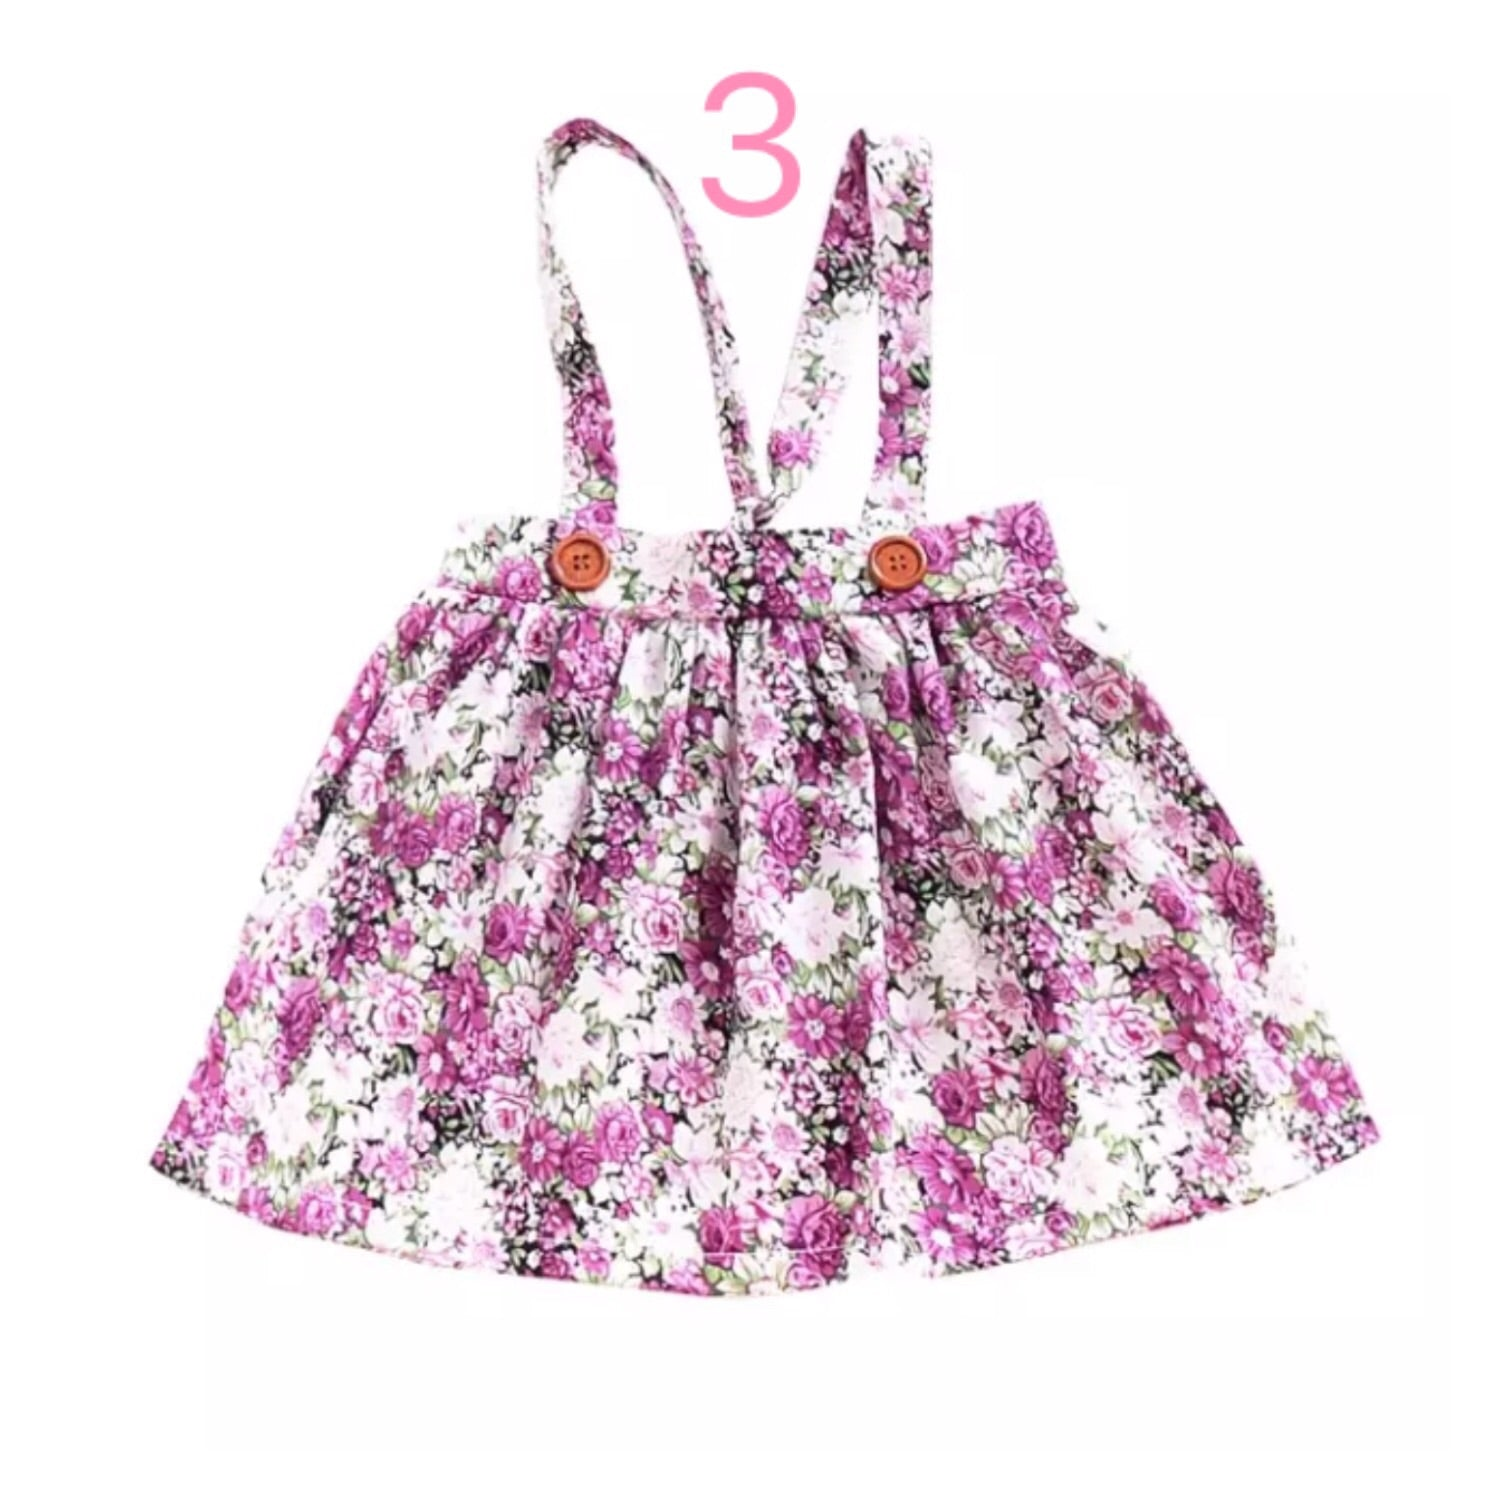 Girl's-Floral-Suspender-Skirts-Purple